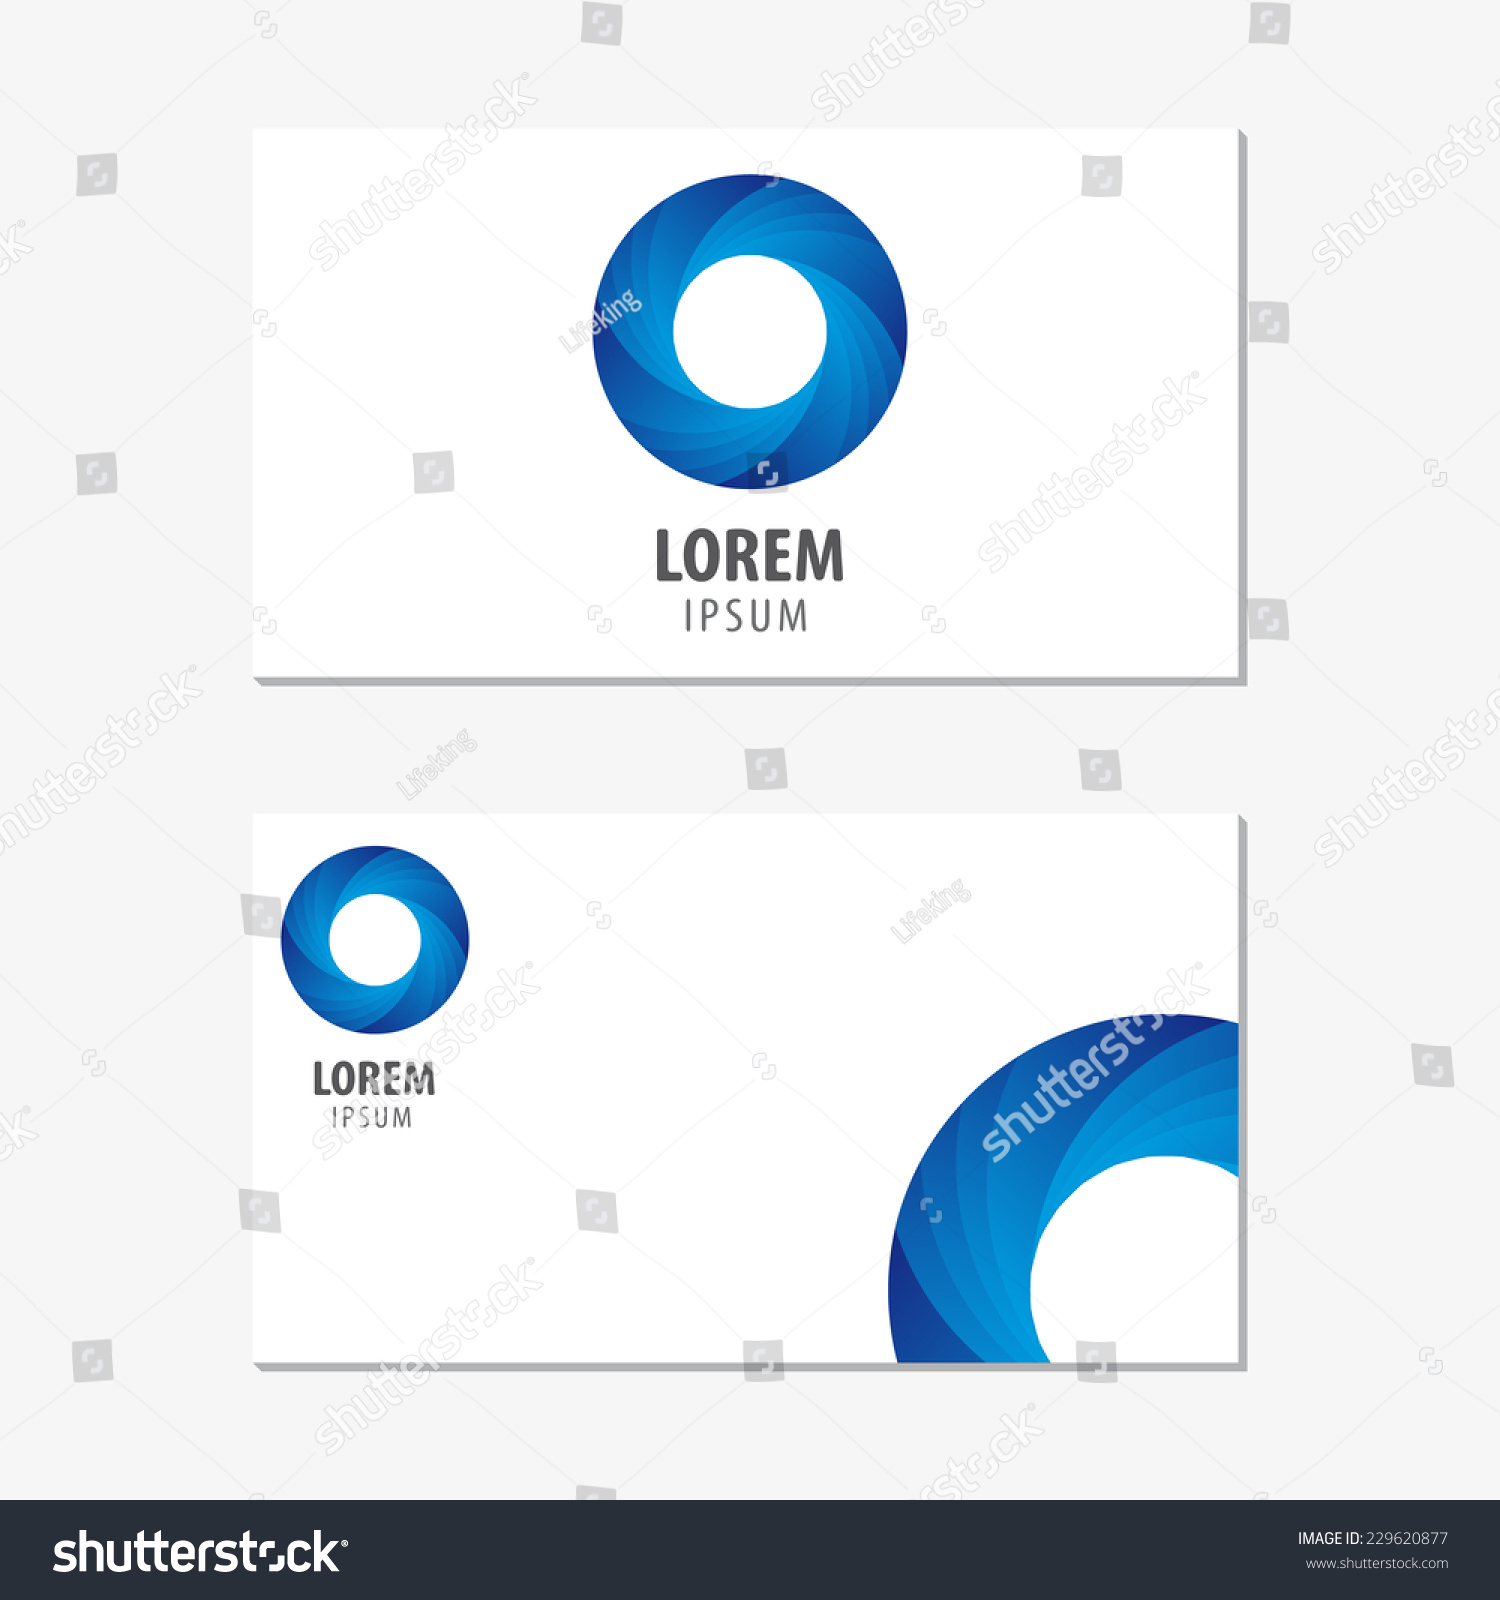 Vector Logo Design Element With Business Card Template On White Background Blue Circle